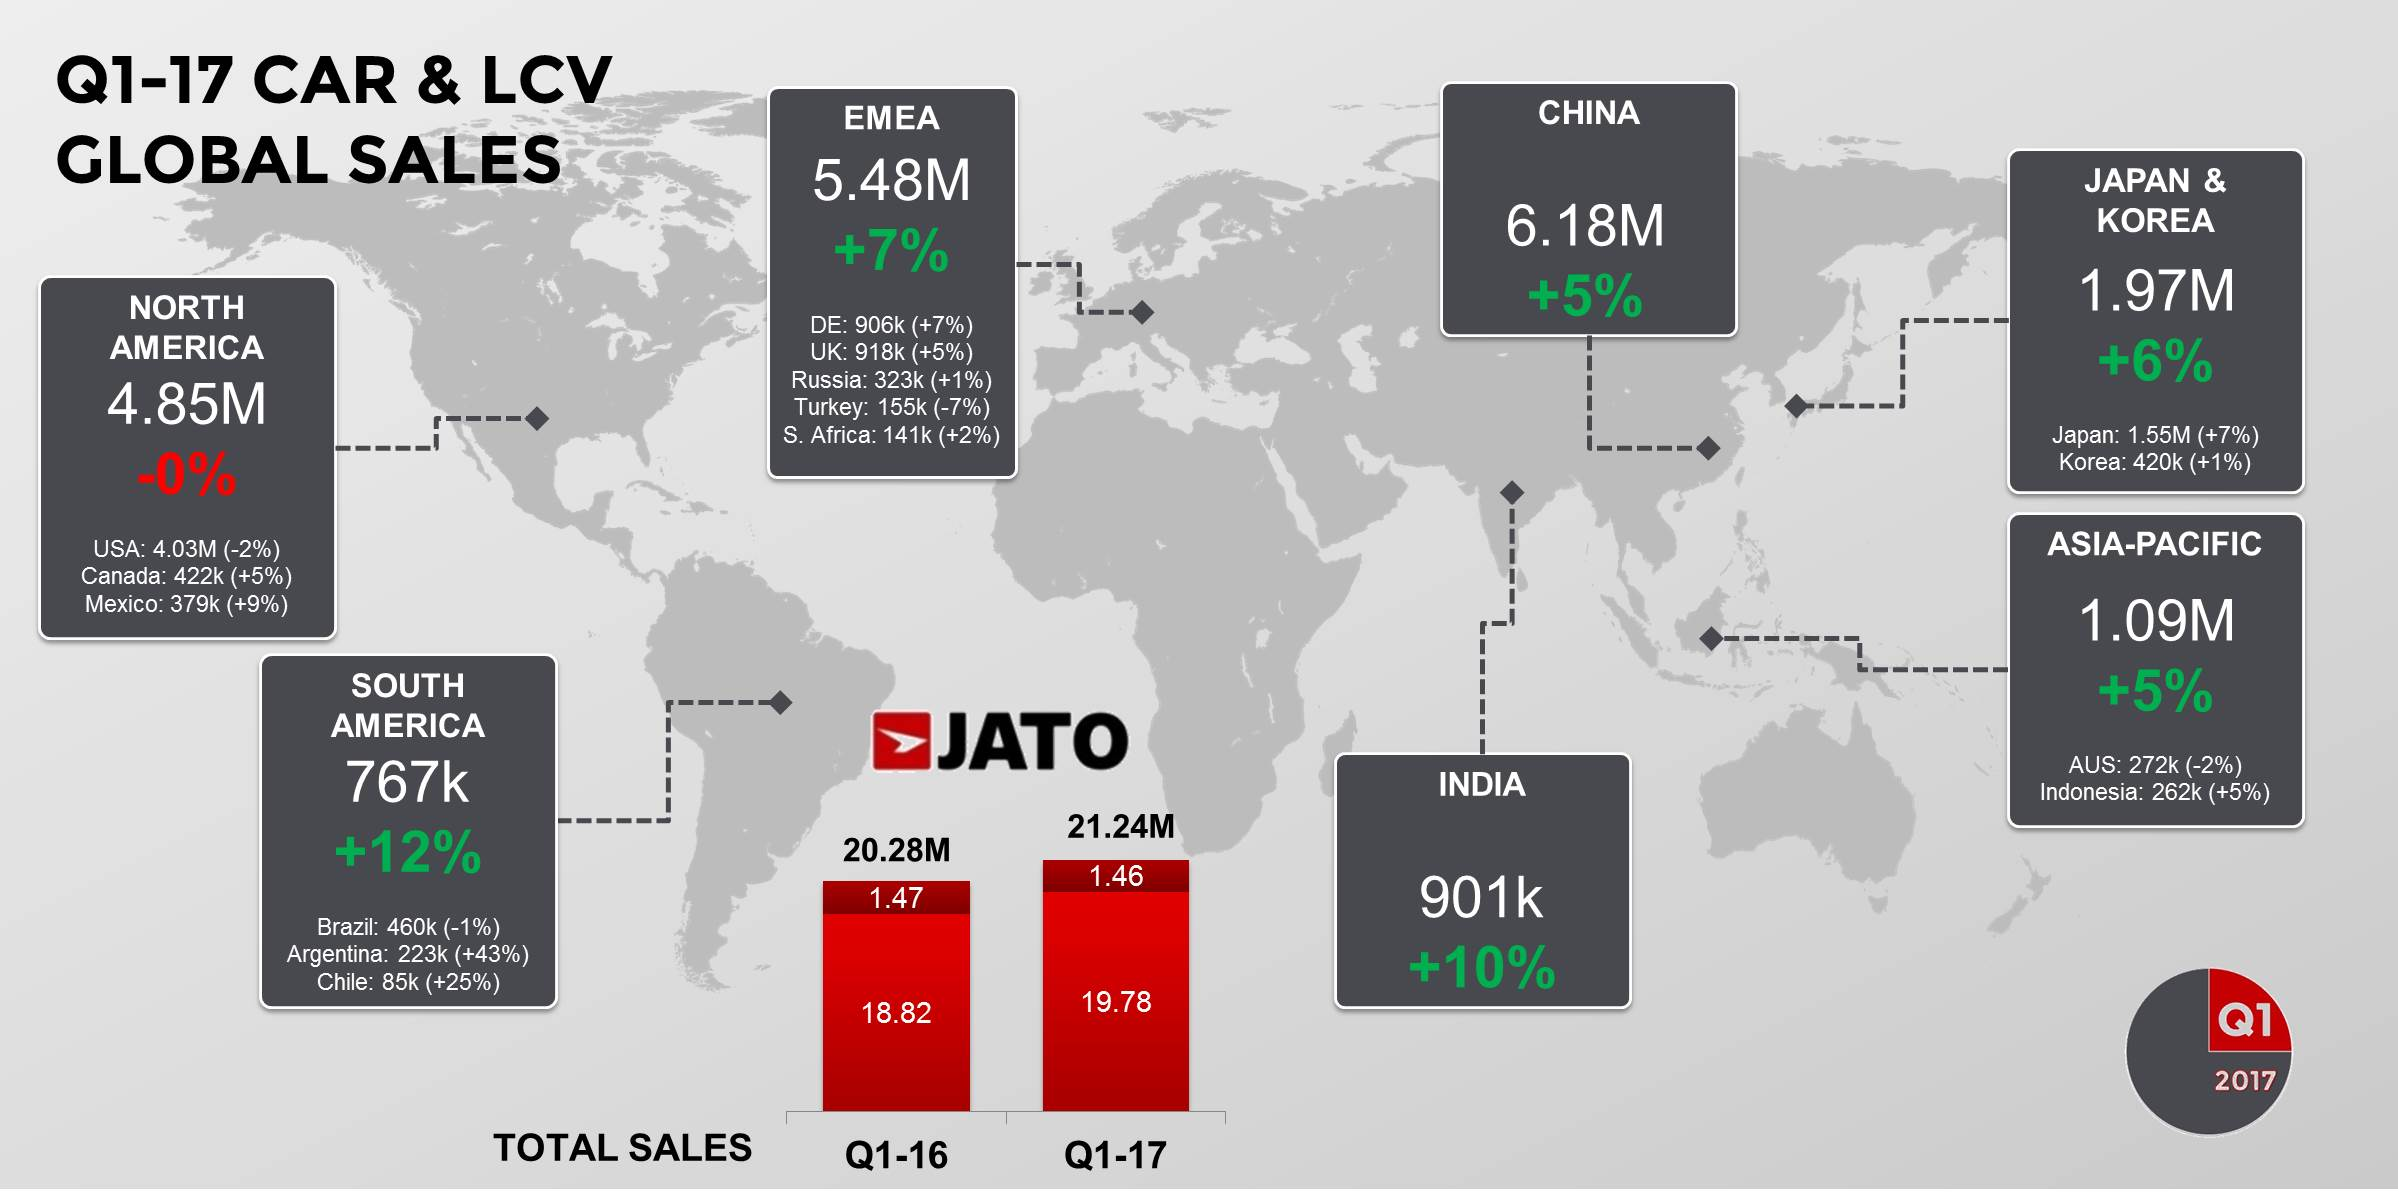 Global vehicle sales up by 4.7% in Q1-17 with Renault-Nissan hitting ...